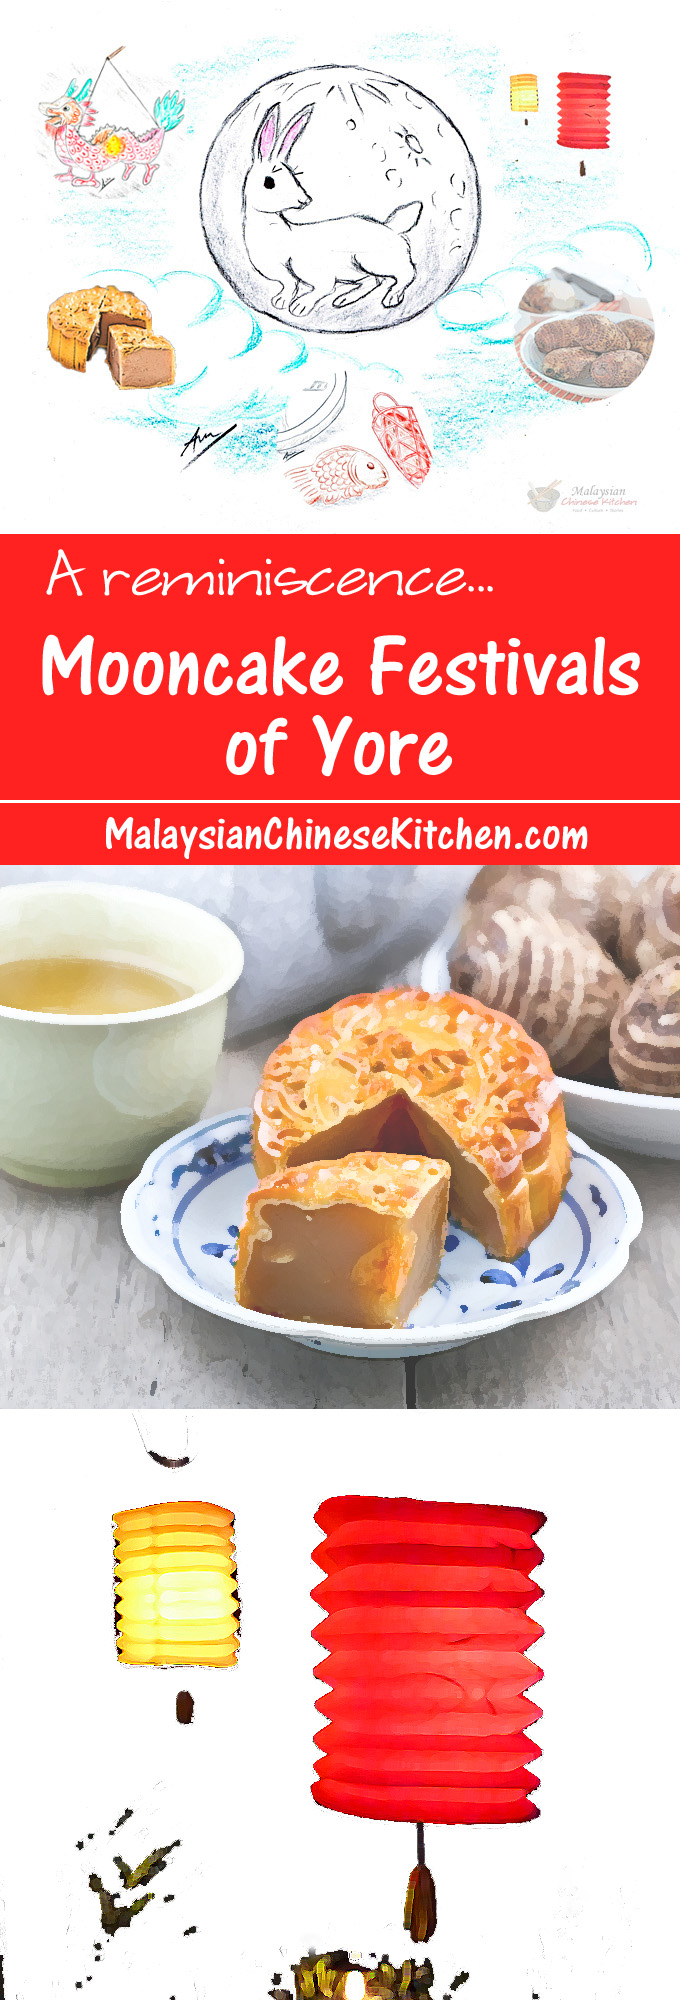 Mooncake Festivals of Yore - a reminiscence of the fun activities and special foods eaten during the Mooncake (Mid-Autumn) Festival. | MalaysianChineseKitchen.com